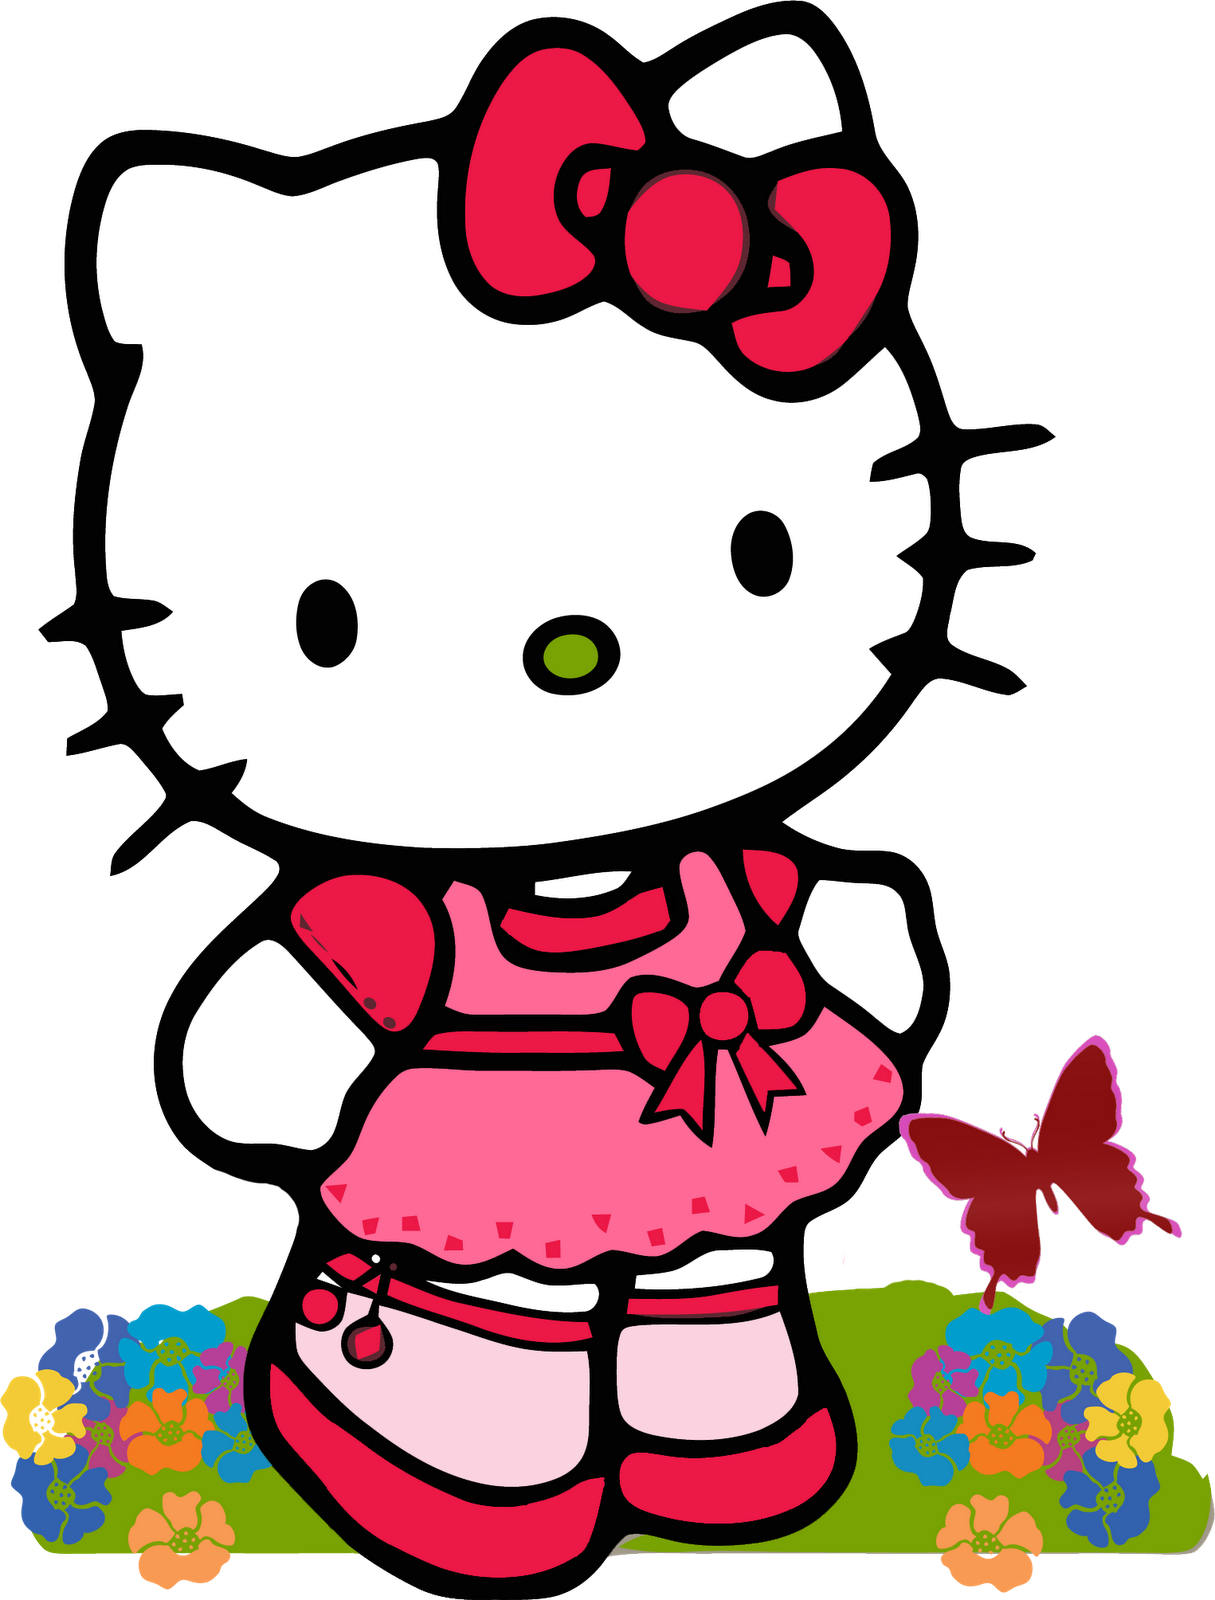 Cute Hello Kitty Clipart at GetDrawings.com.